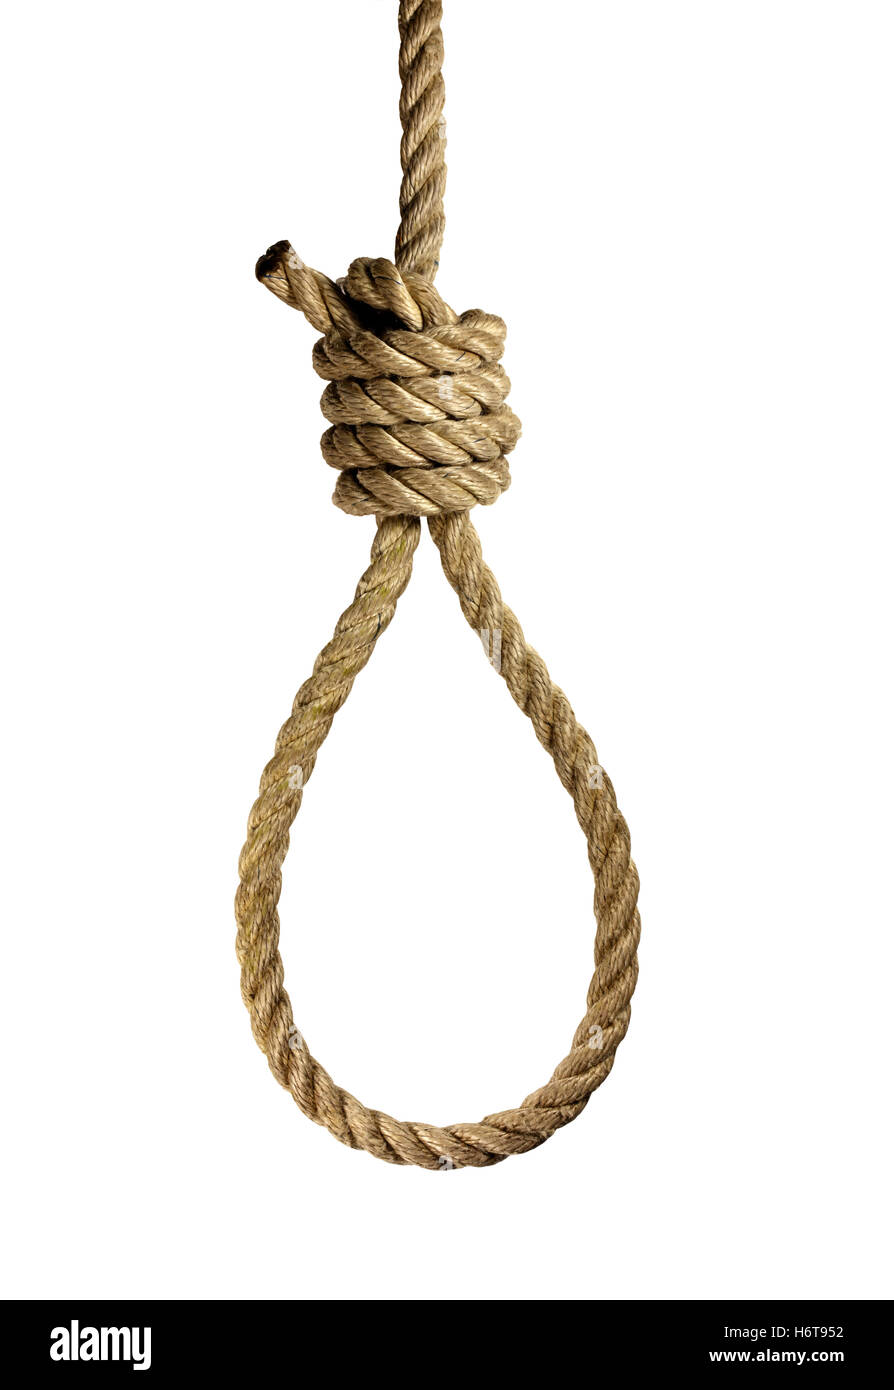 gallows, suicide, justice, snare, hangman, sentence of death, capital - Stock Image